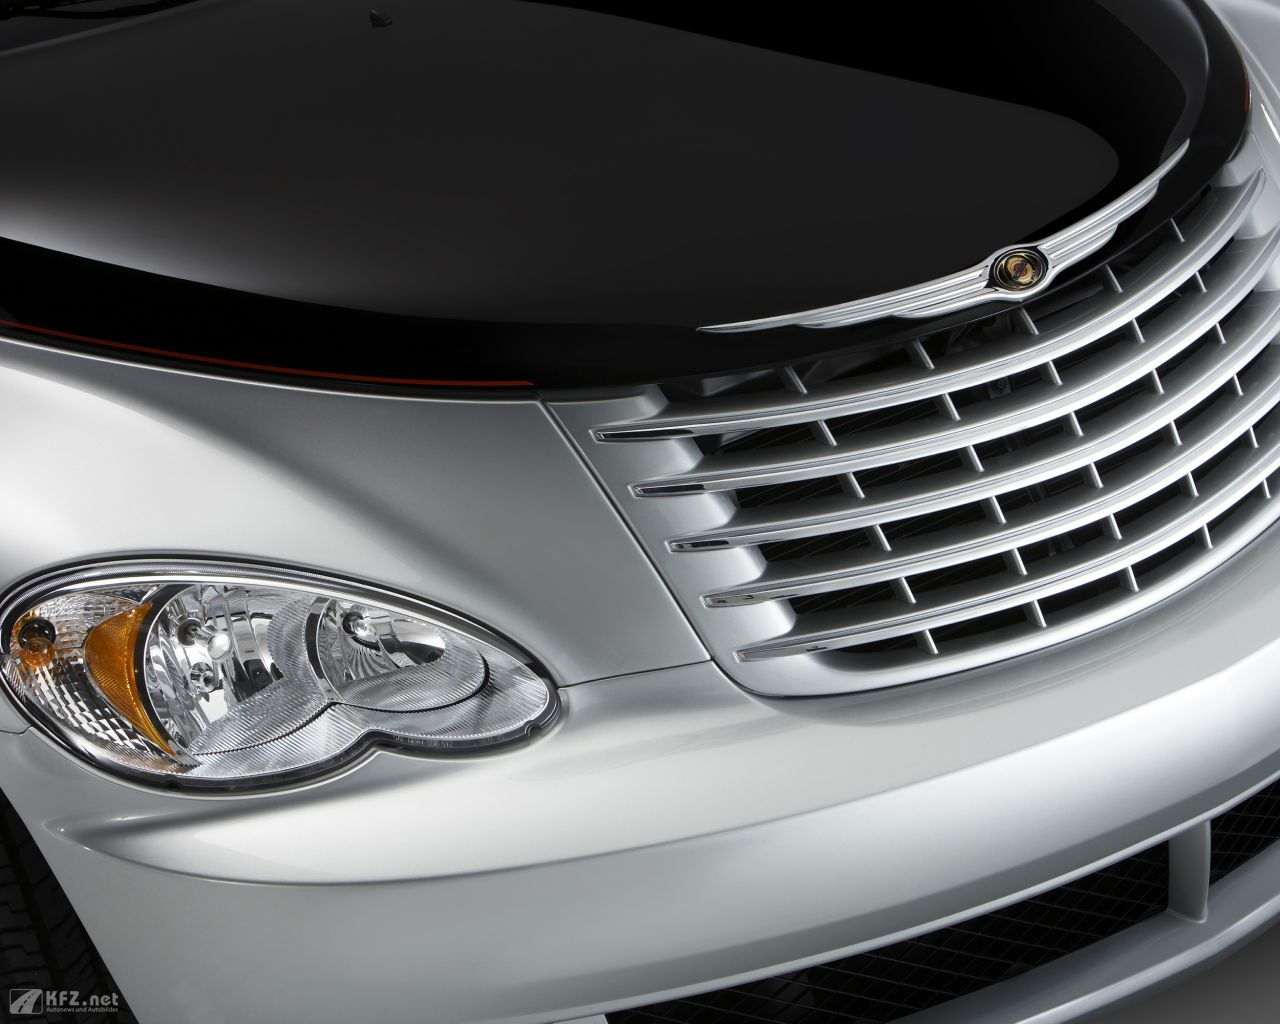 chrysler-pt-cruiser-1280x1024-20